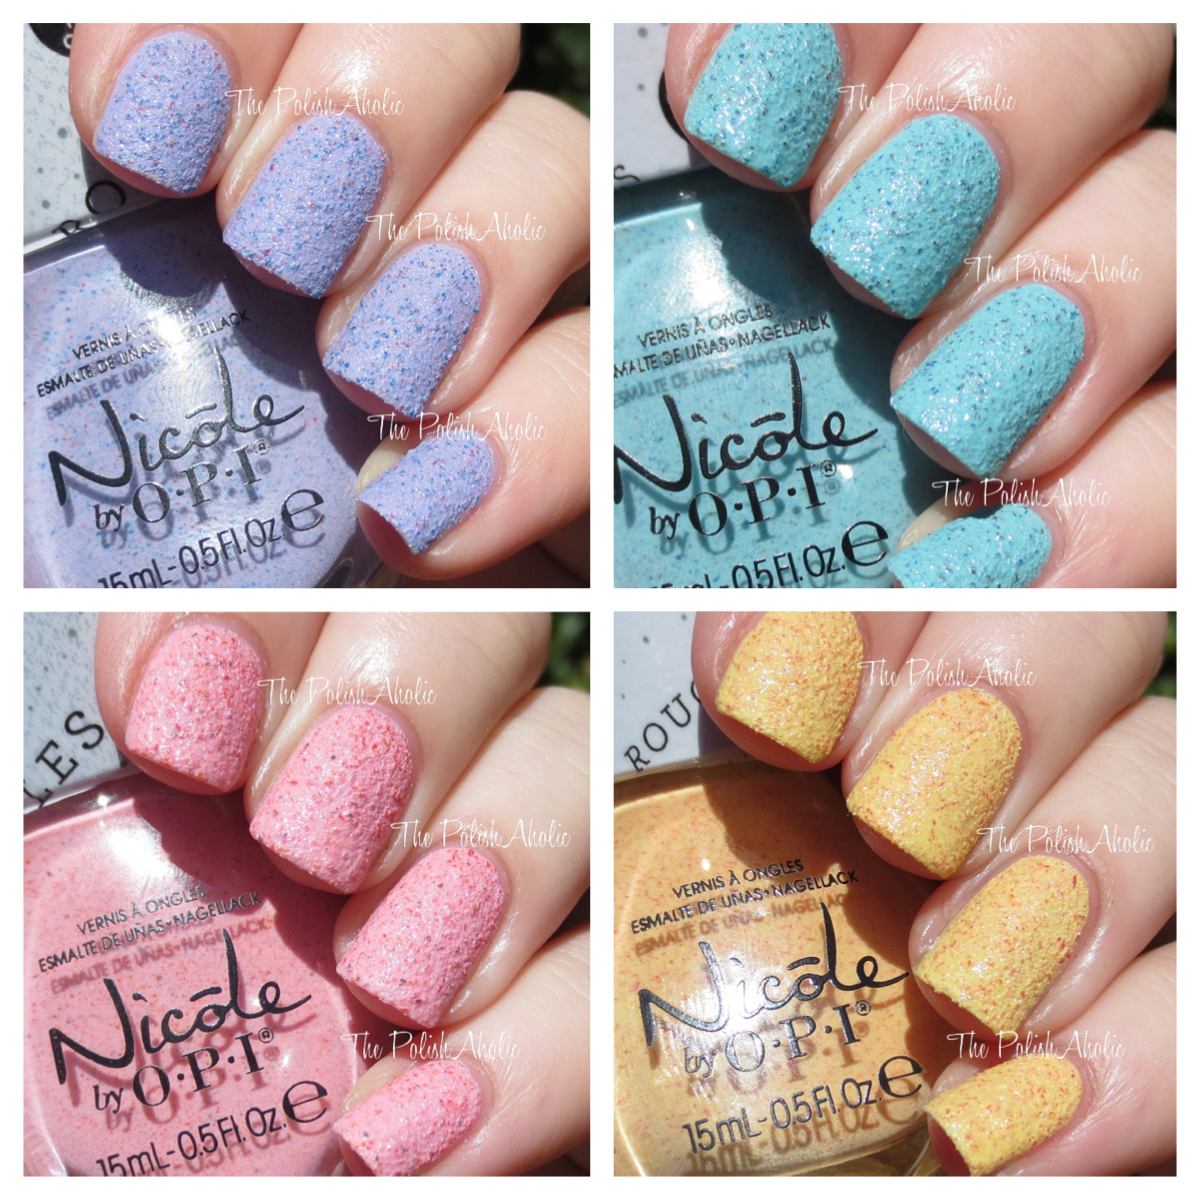 The PolishAholic: Nicole by OPI Roughles Collection